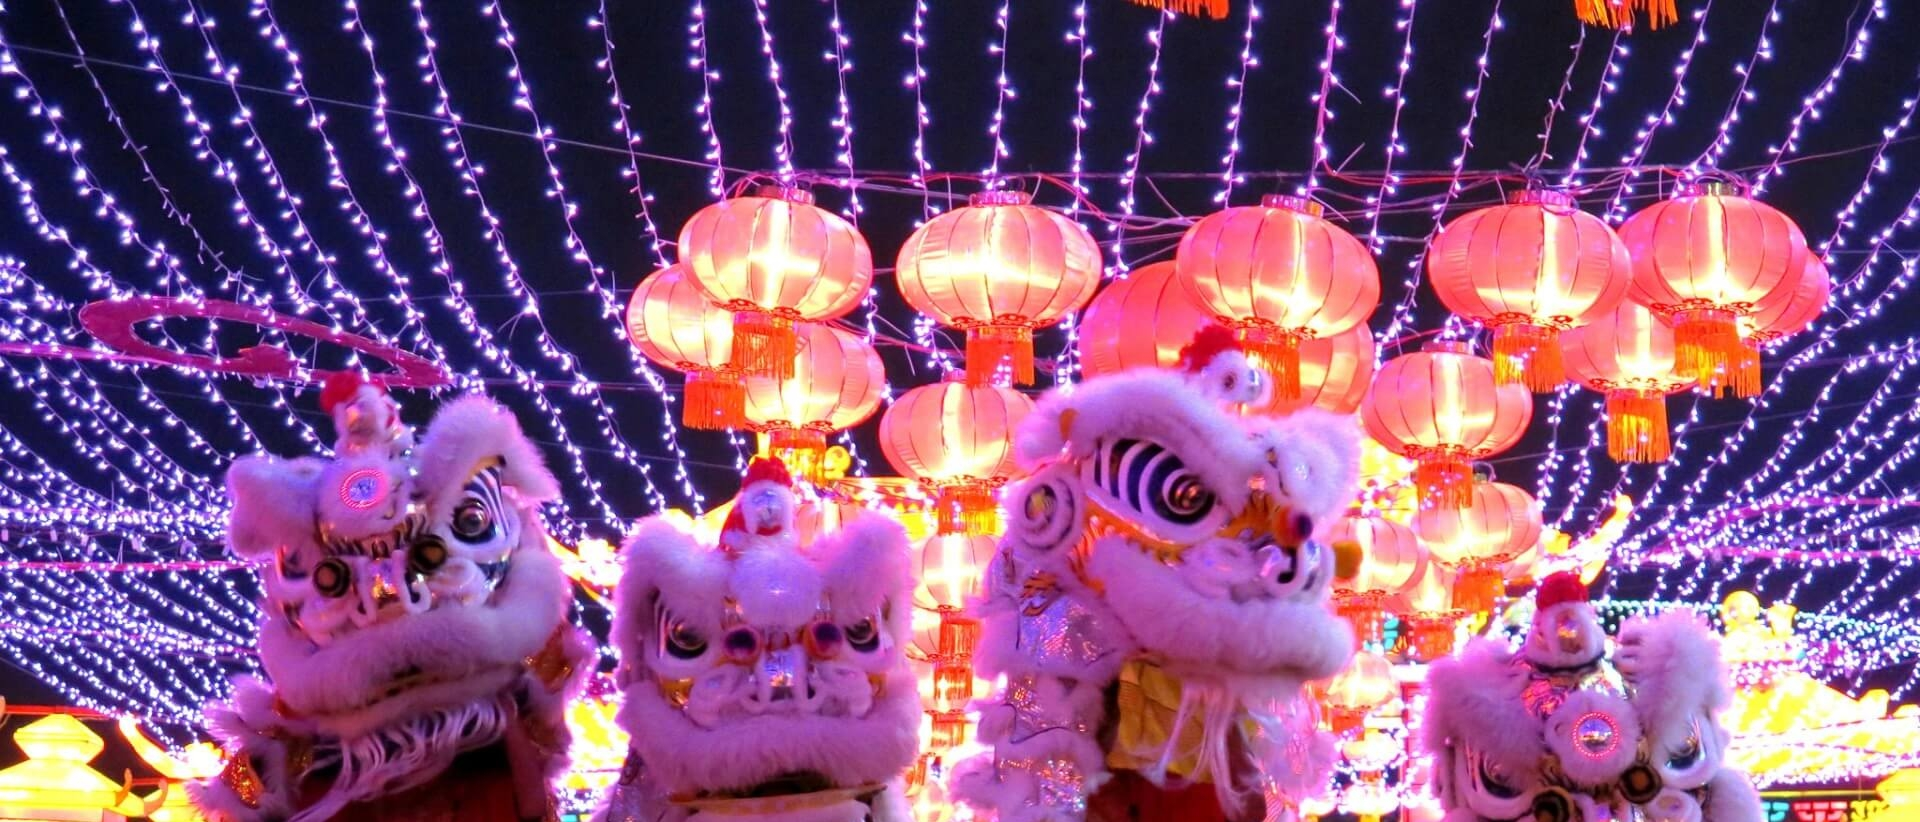 Lion dance in Singapore